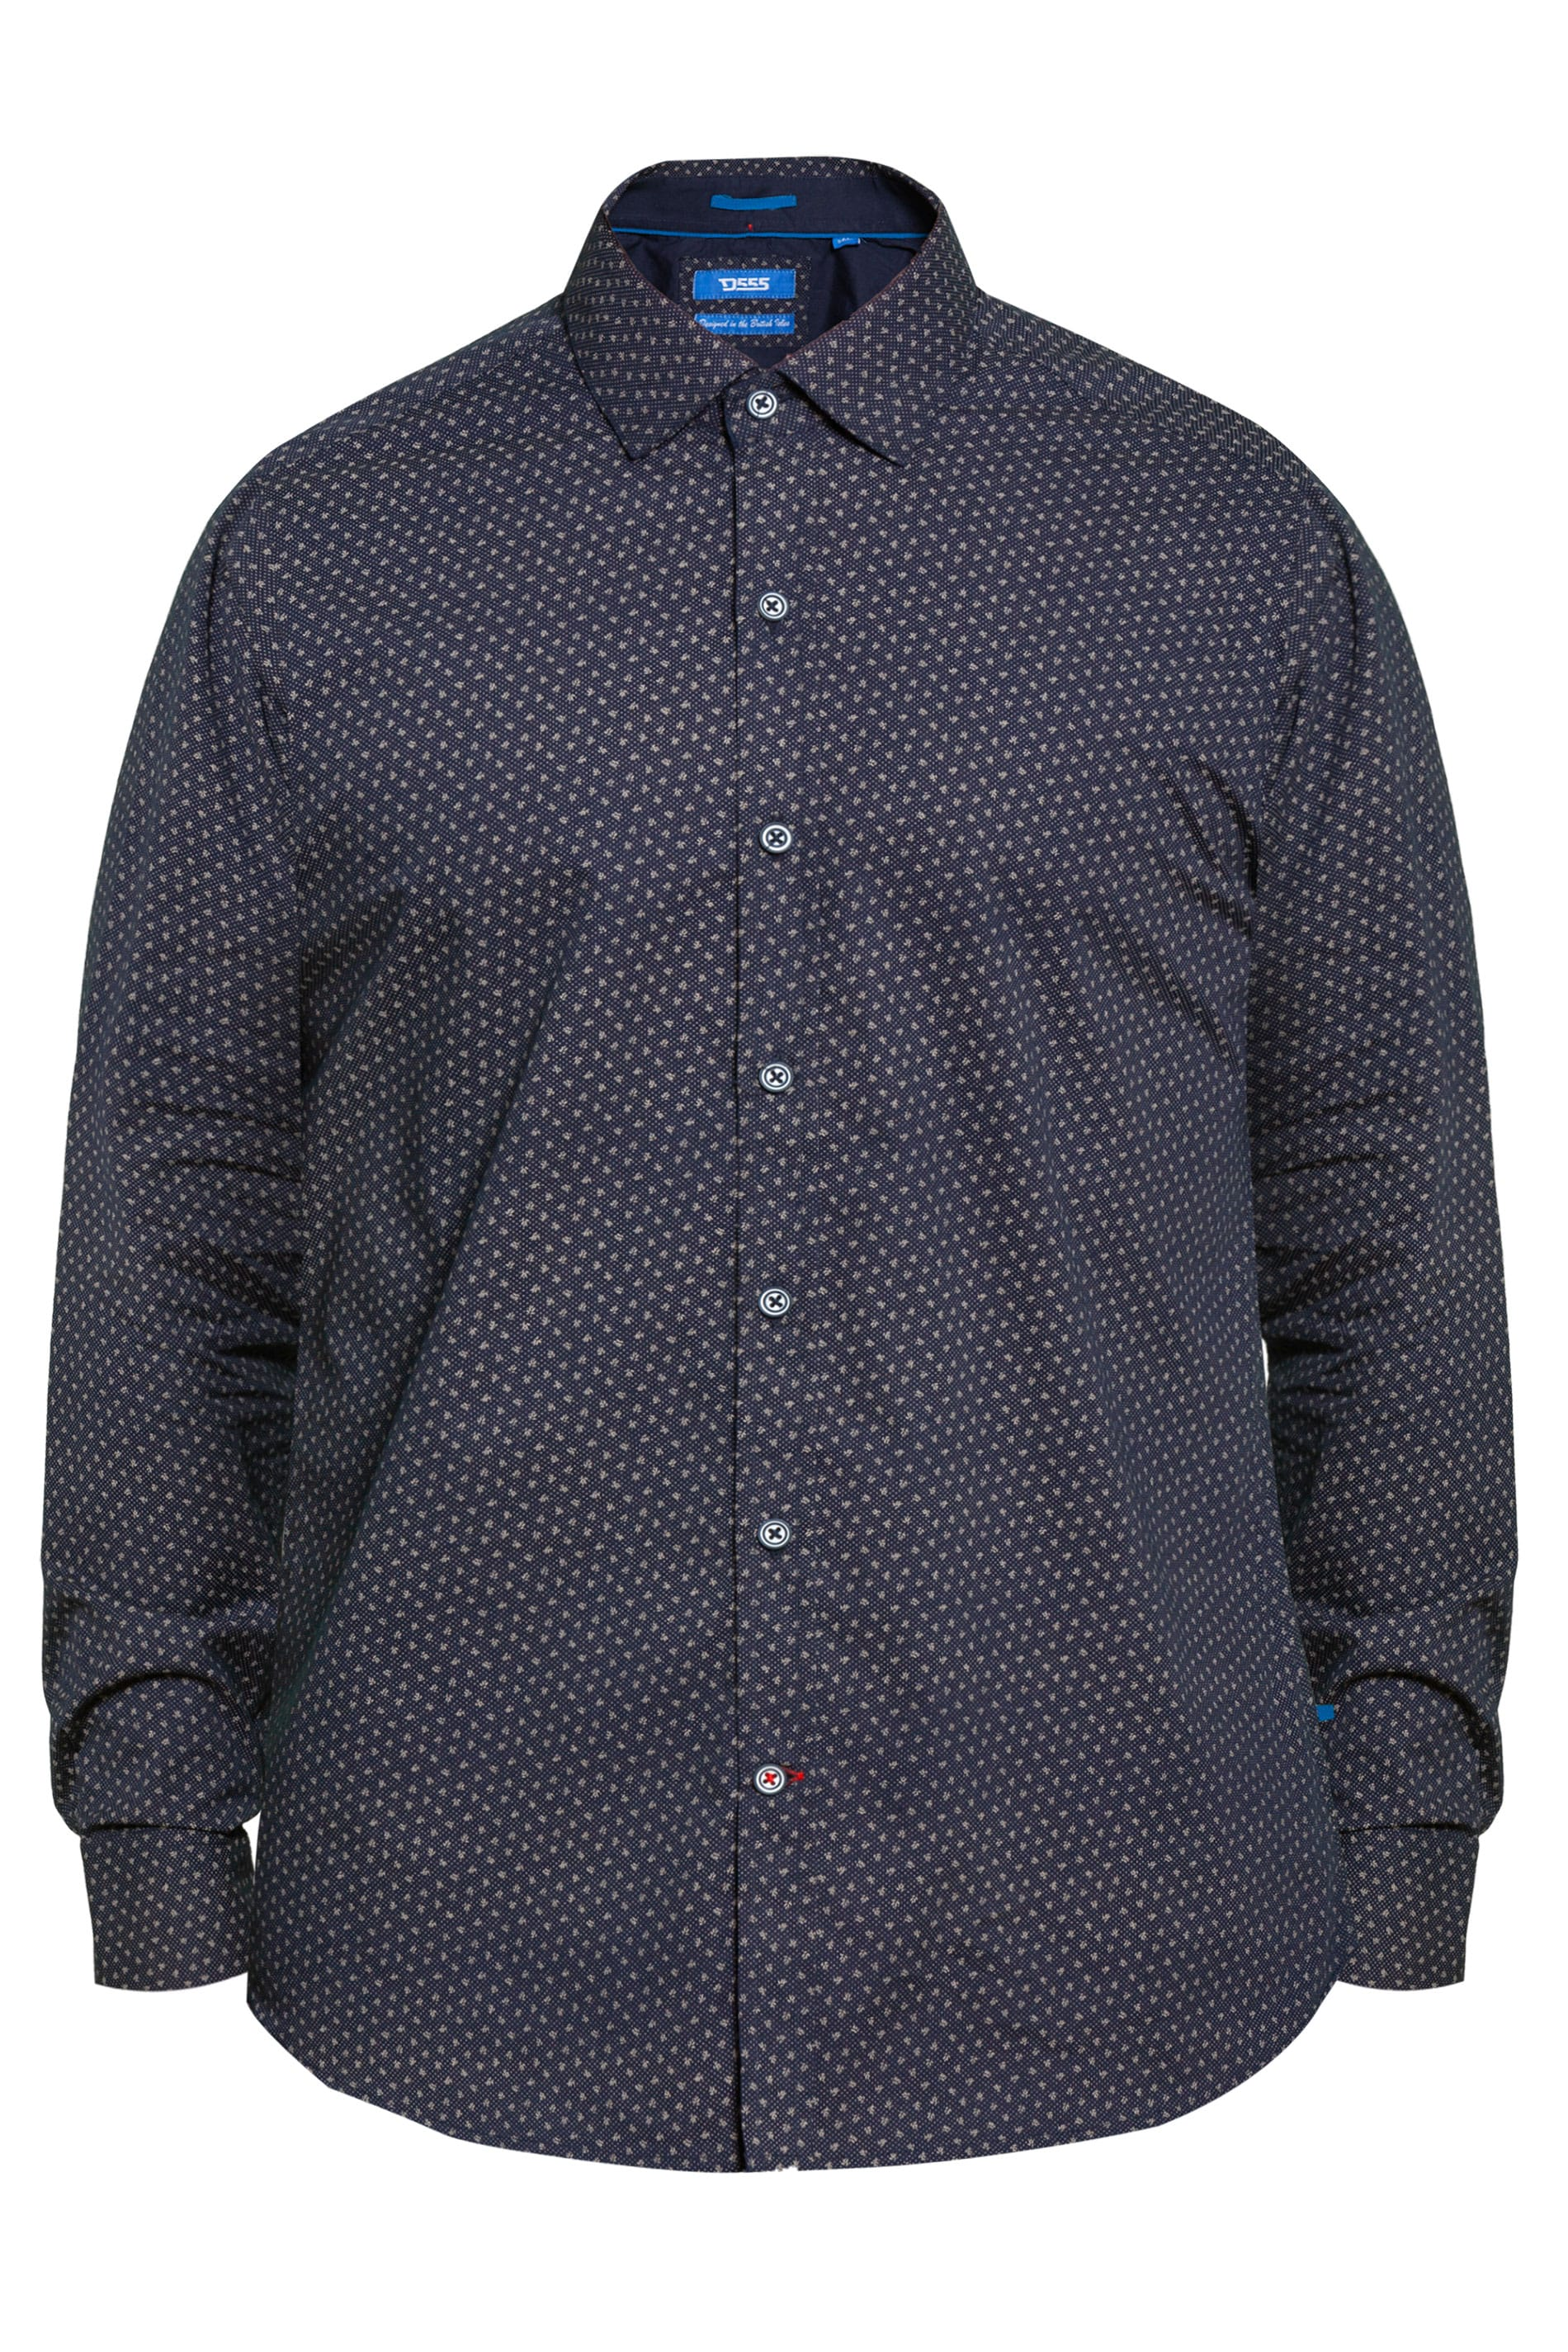 D555 Navy Leaf Print Shirt